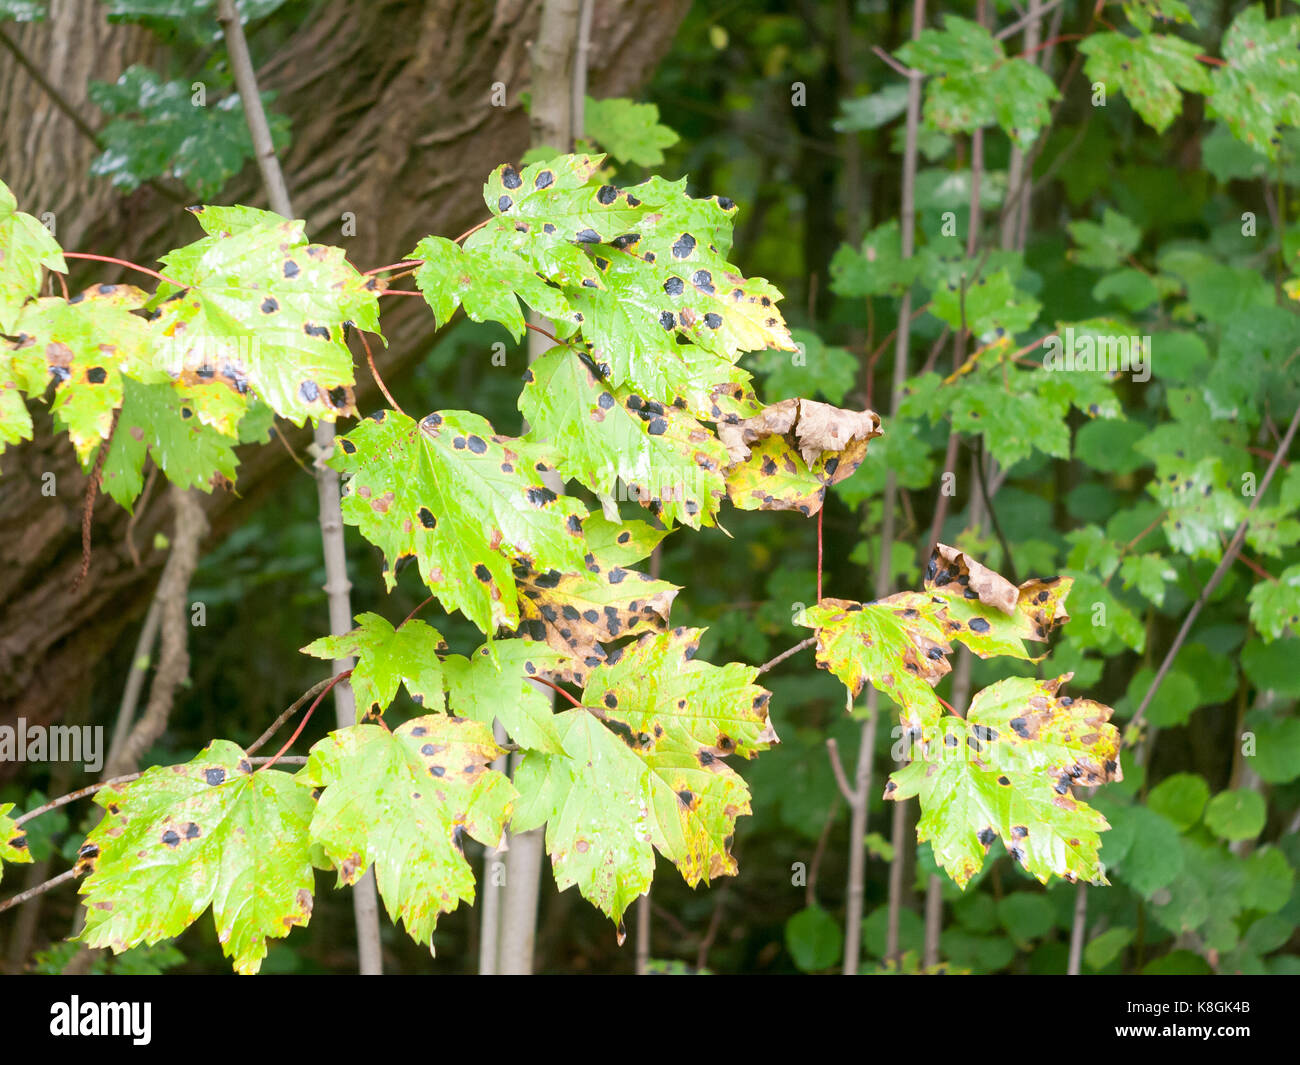 close up of black spot on green forest leaves - Stock Image